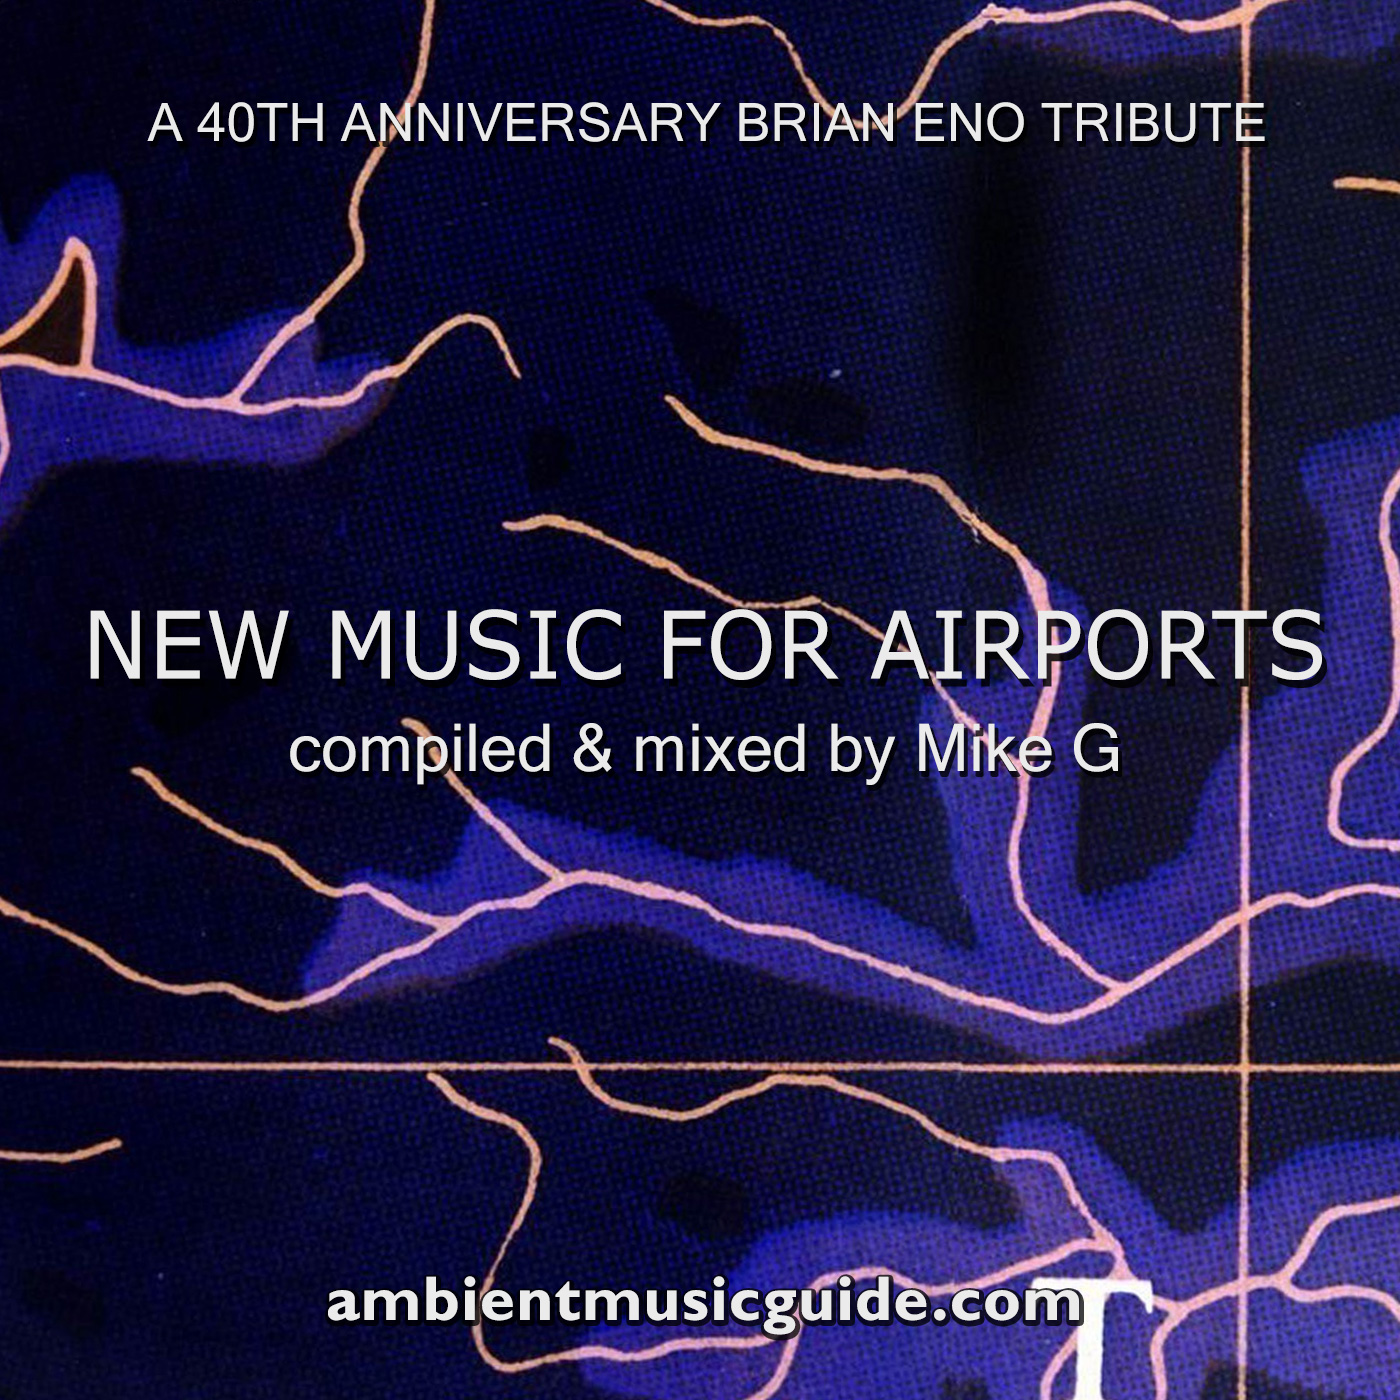 New Music For Airports - a 40th anniversary Brian Eno tribute mixed by Mike G